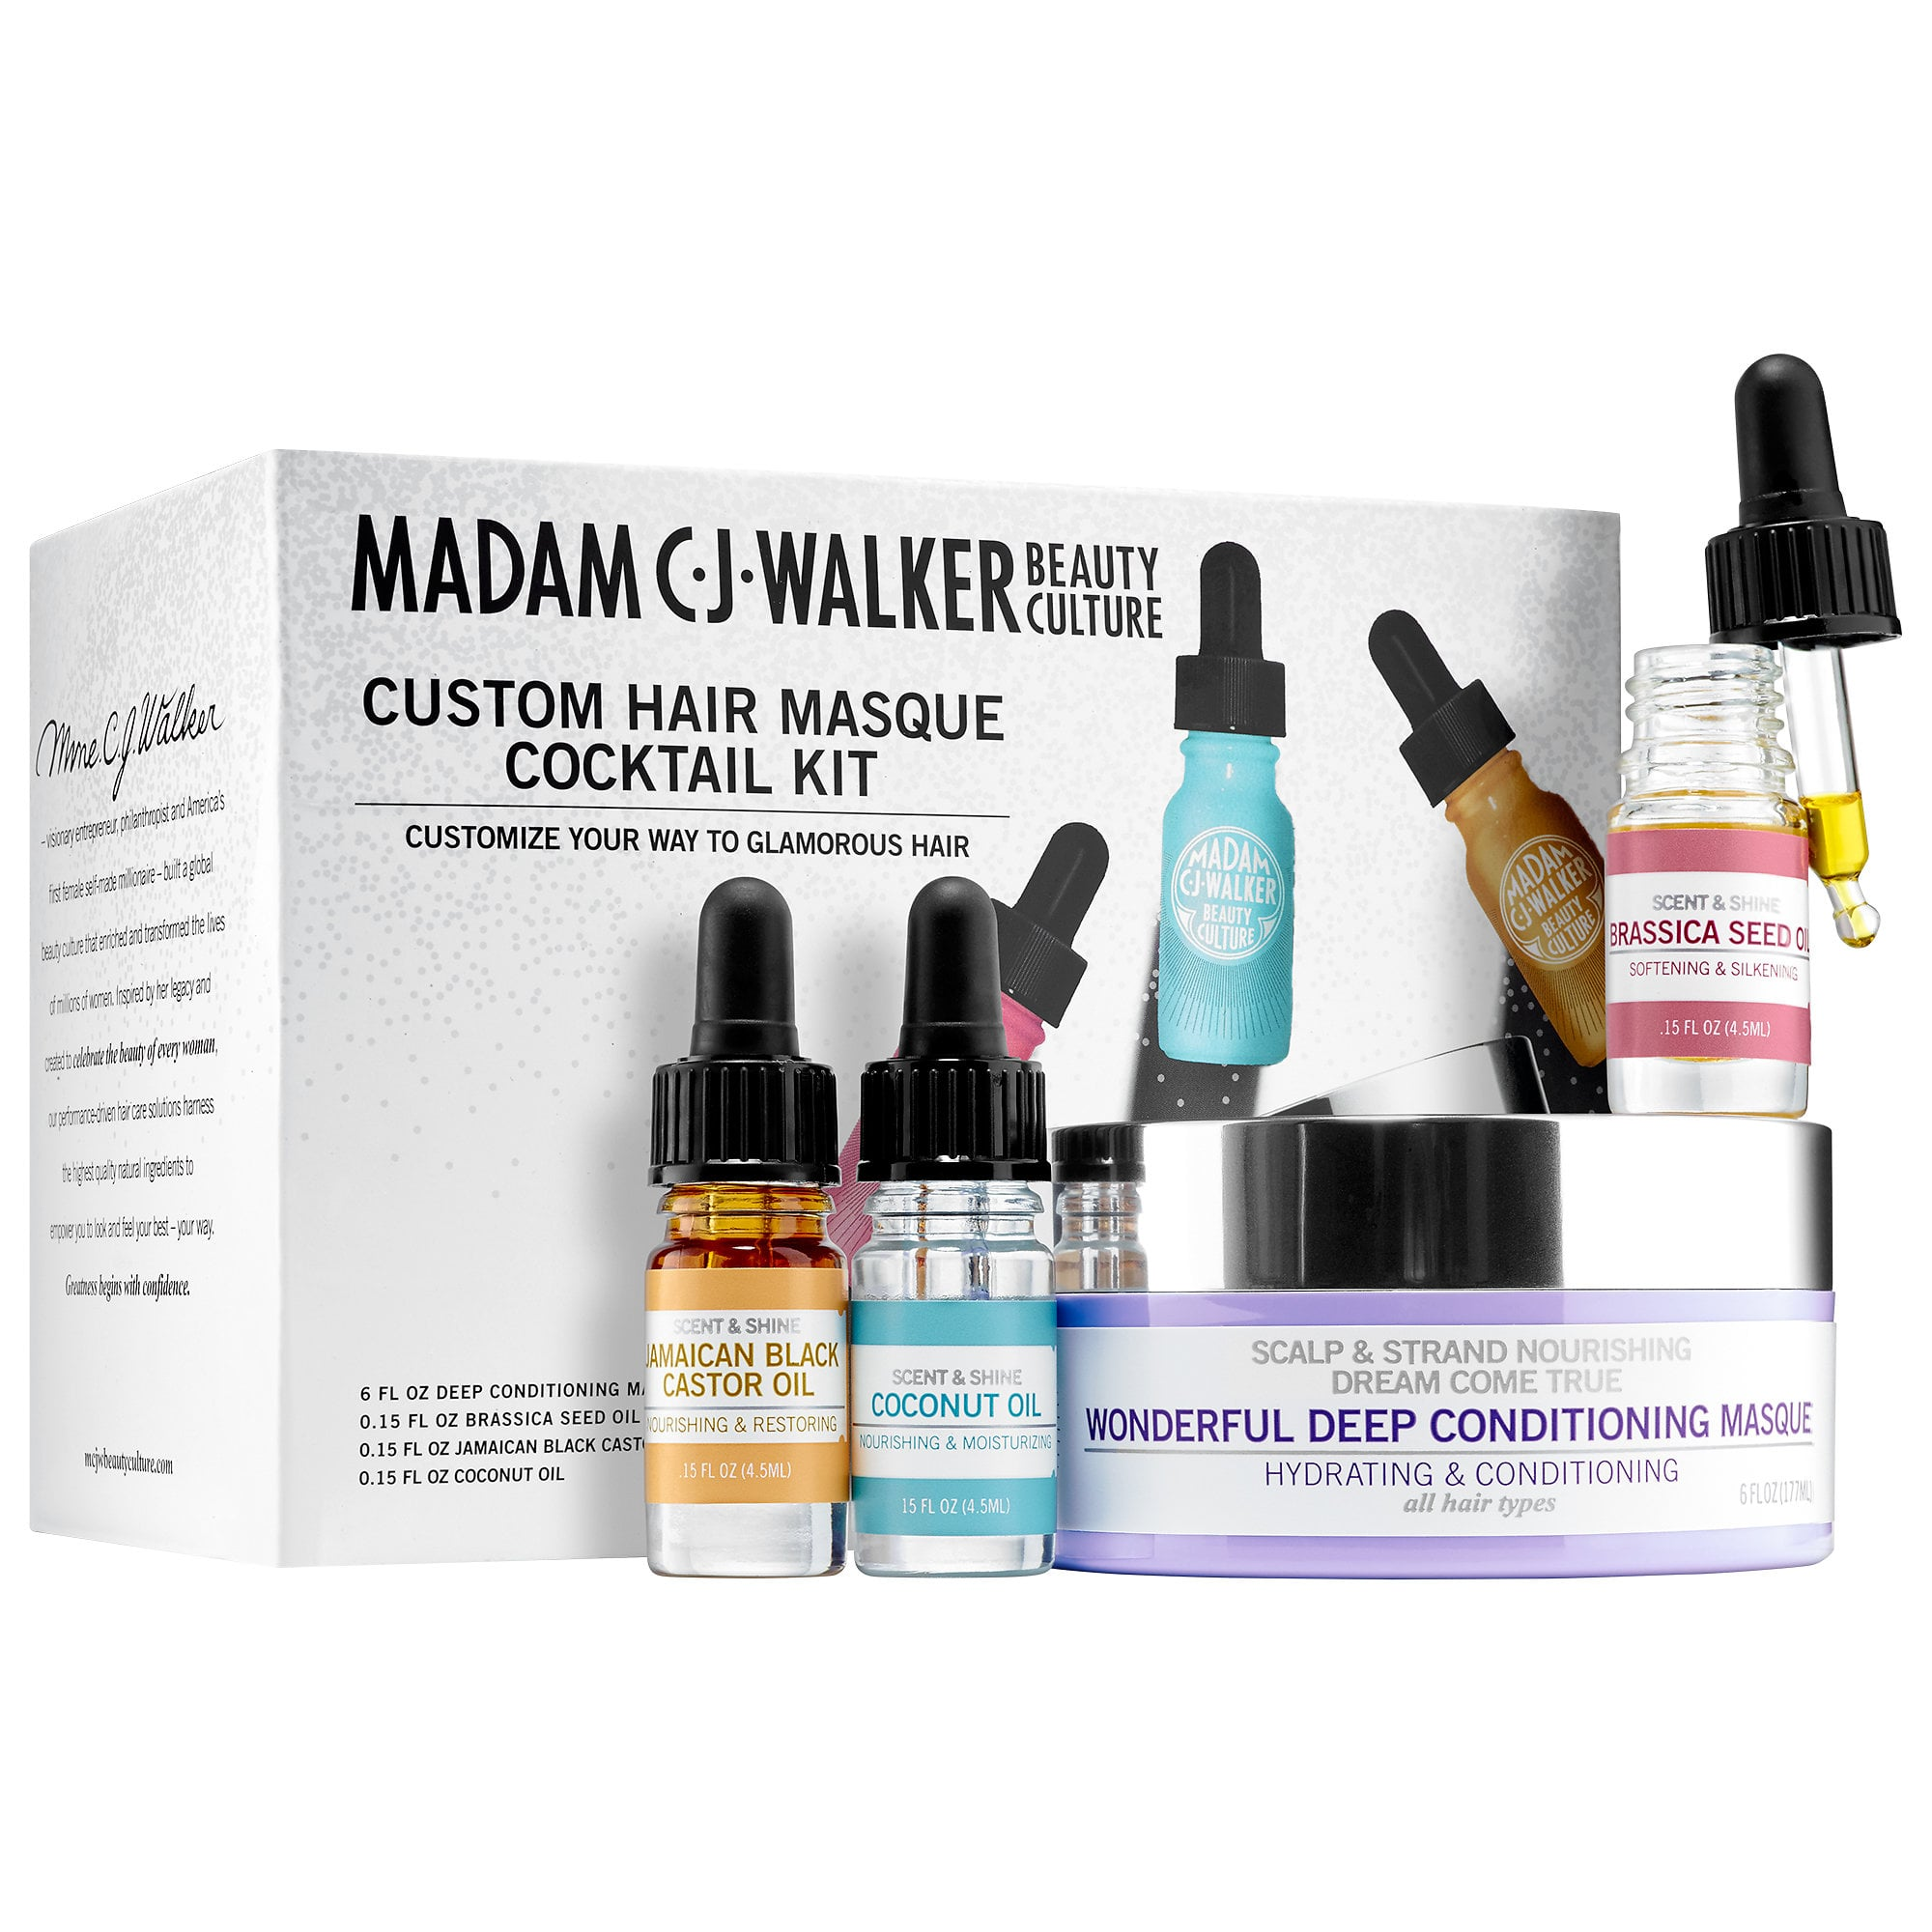 Madam C J Walker Beauty Custom Hair Masque Cocktail Kit A Definitive List Of The Best Brown Girl Beauty Products Of 2016 Popsugar Beauty Photo 2